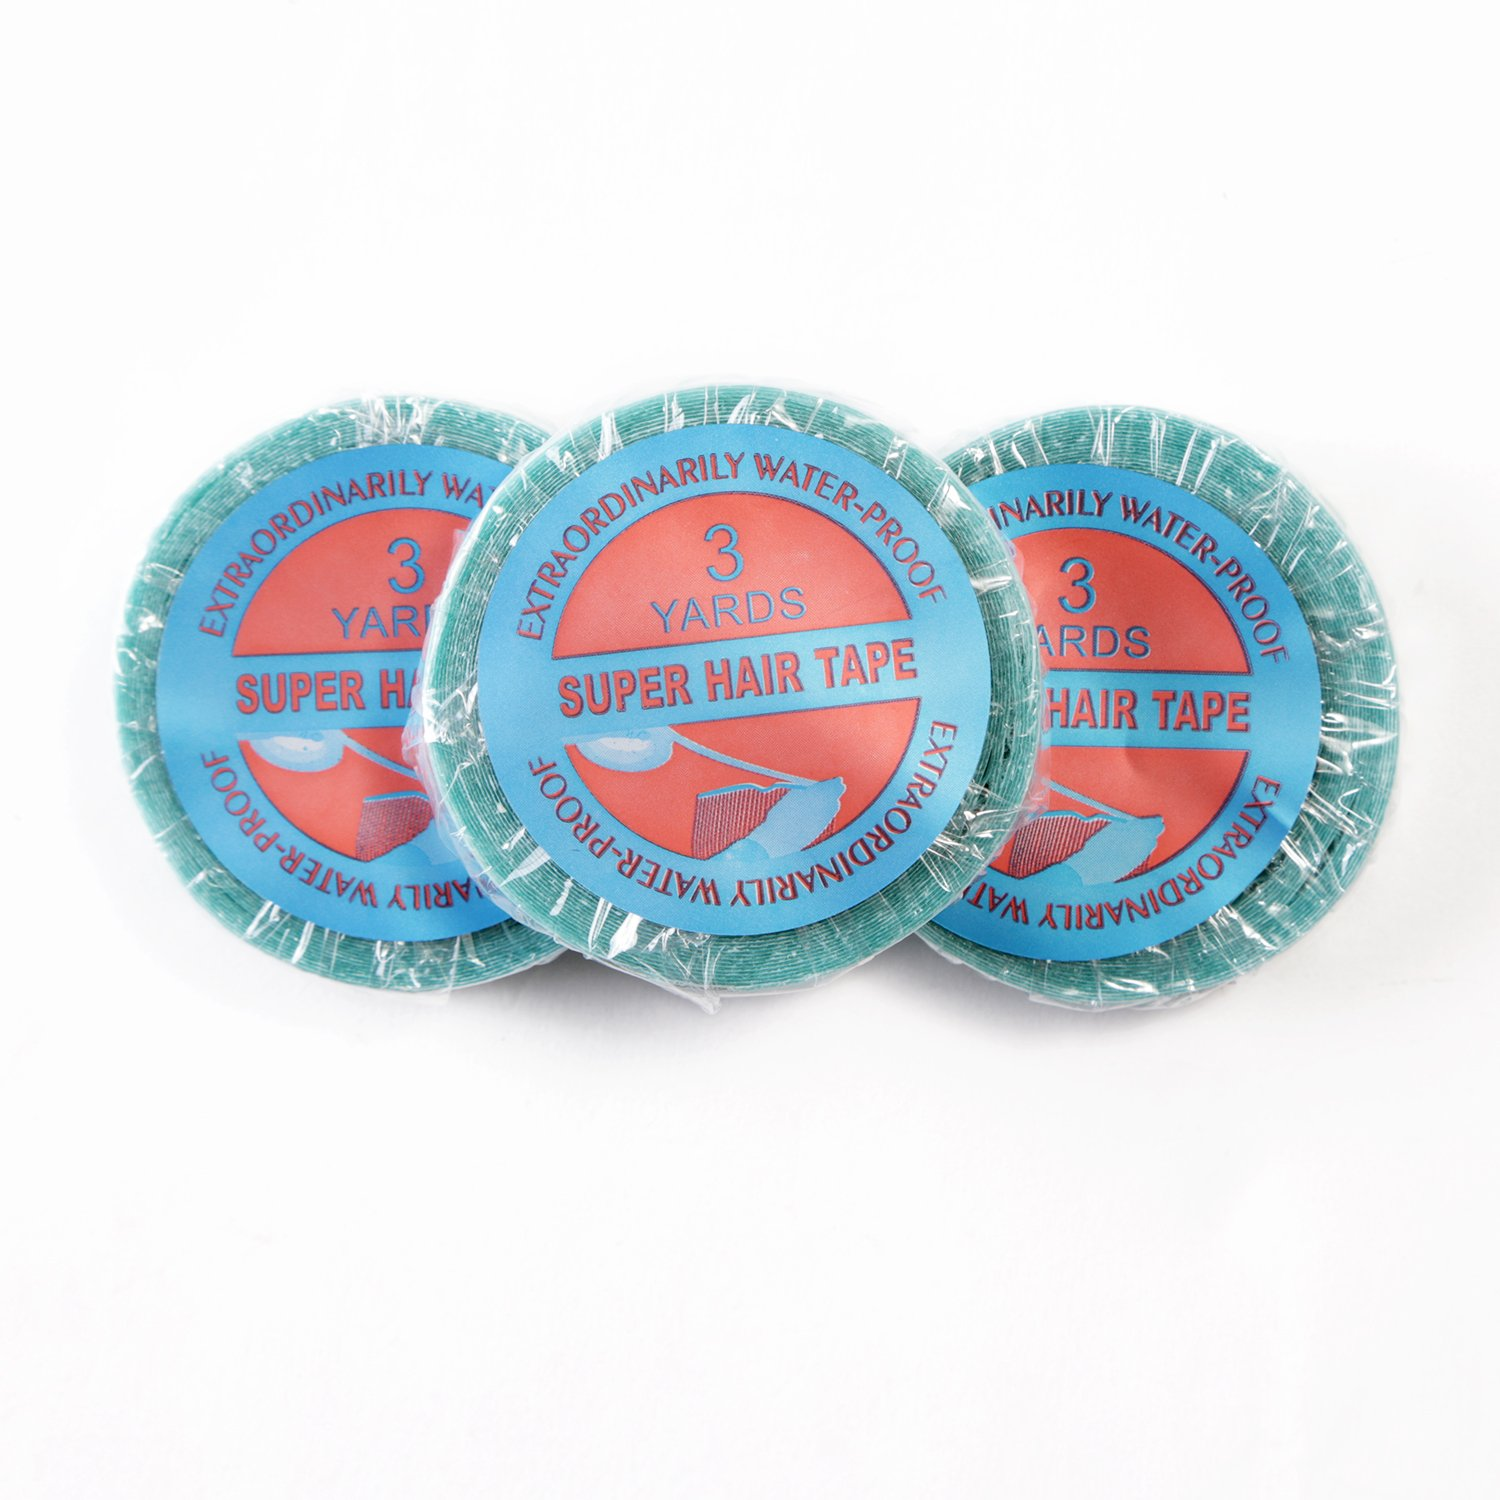 3Yards 8MM Strong Waterproof Double Sided Bonding Super Hair Tape Germany Tape for Tape in Hair Extensions ZHUHAI AIYUCHEN COMPANY CO. LTD